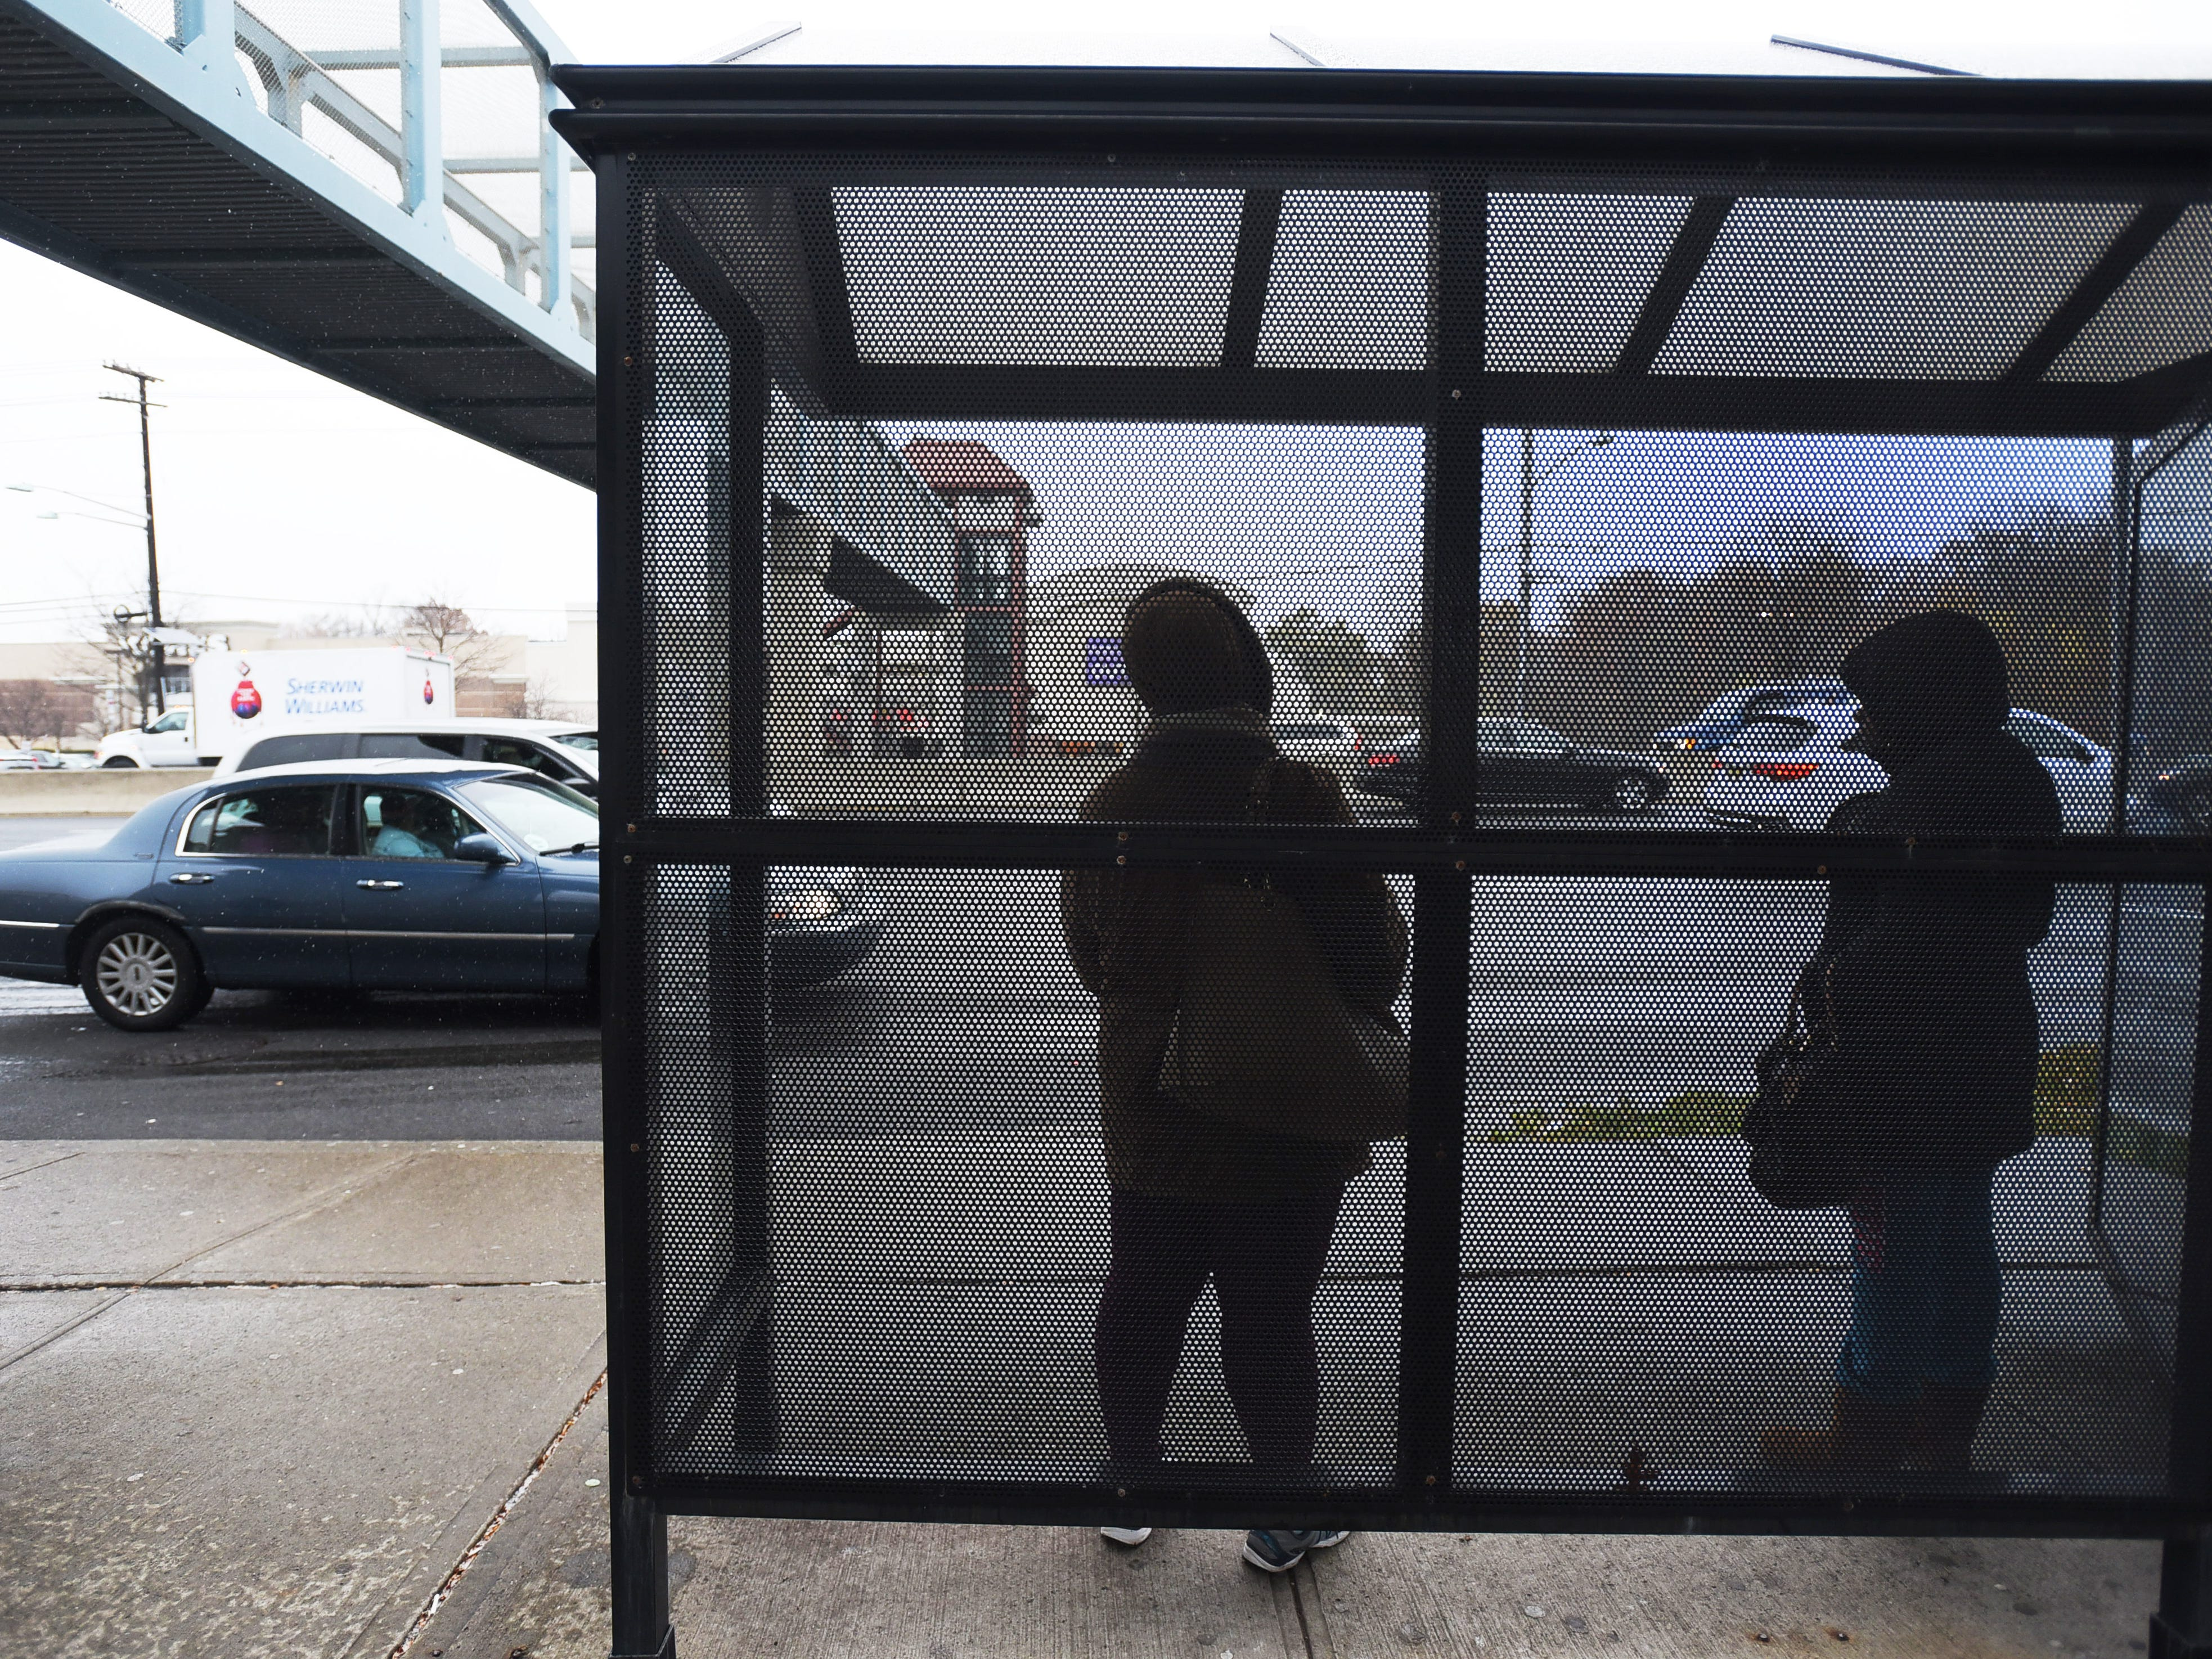 November 15, 2018, Paramus, NJ, USAPeople wait at a bus stop along Route 4 East as the snow begins to fall at Bergen Town Center.